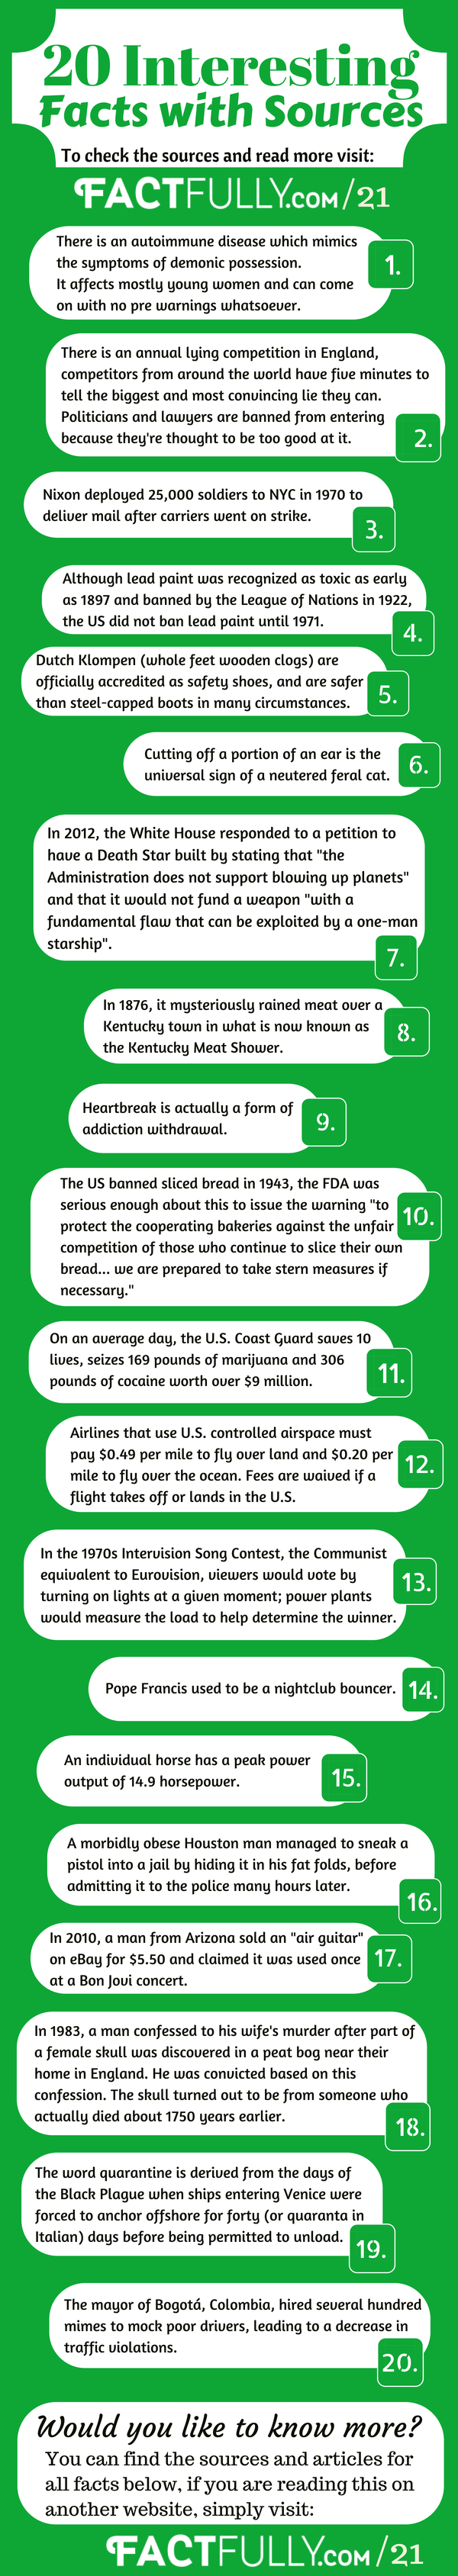 20 Interesting Facts And Stories. Here are the sources: . 20 Interesting Facts with Sources To check the sources and read more visit: FACT'S / MI There is an au